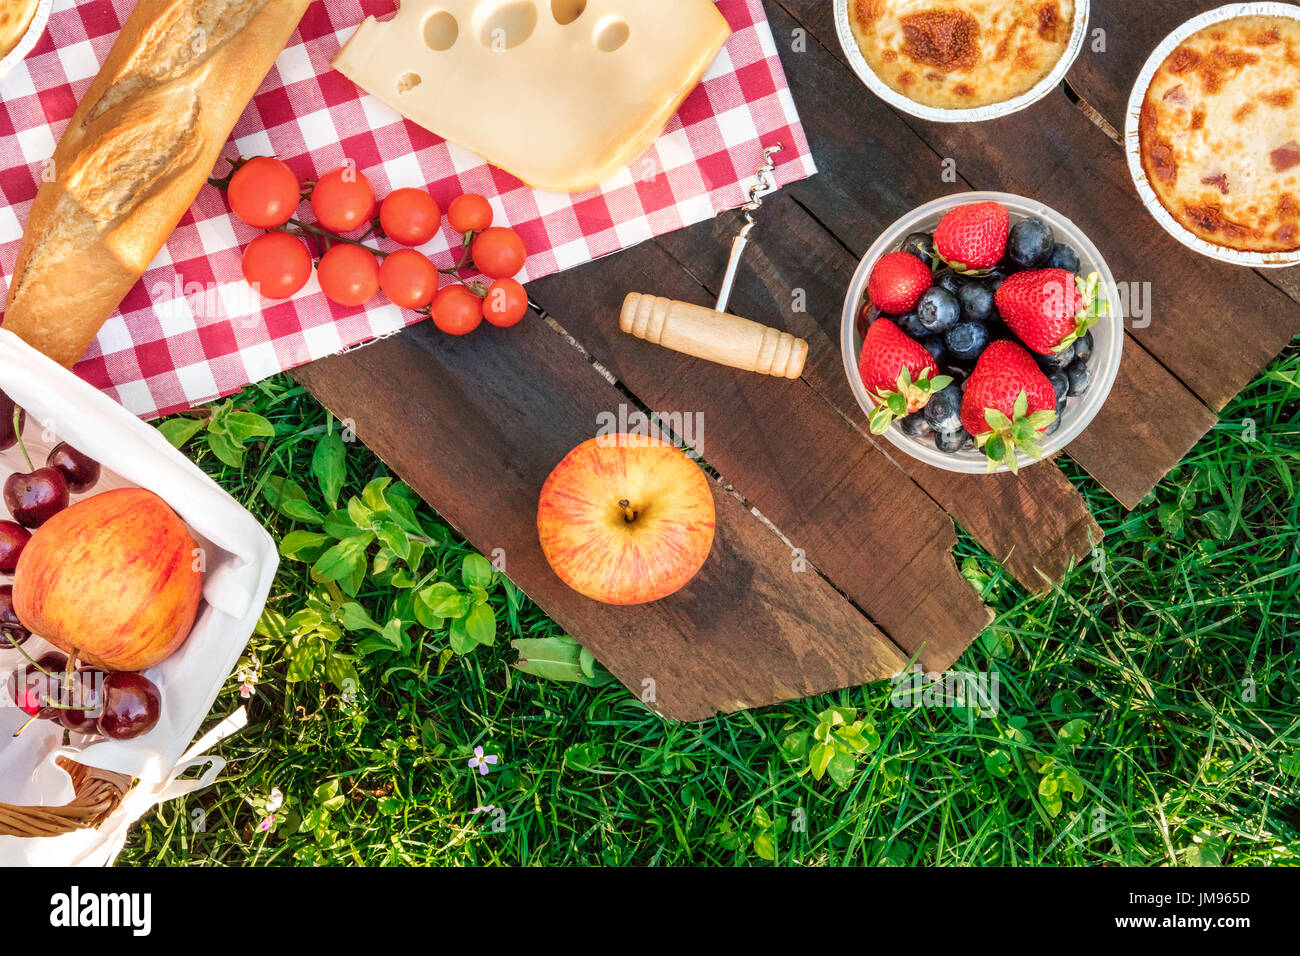 Overhead photo of picnic with apples, fresh fruit in plastic container, piece of Dutch cheese, quiches, baguette, and a corkscrew, on a rustic wooden  - Stock Image